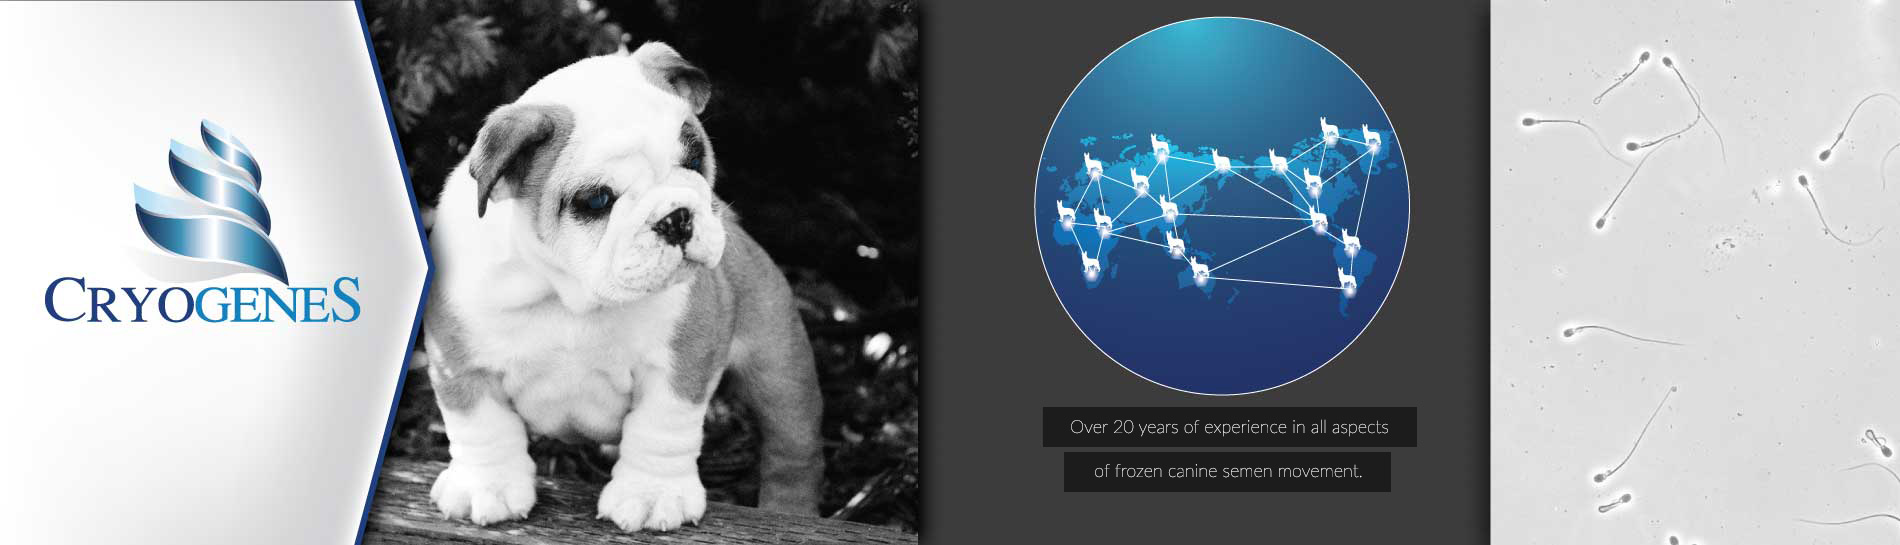 Services By Cryogenes - Canine Frozen Semen Transportation